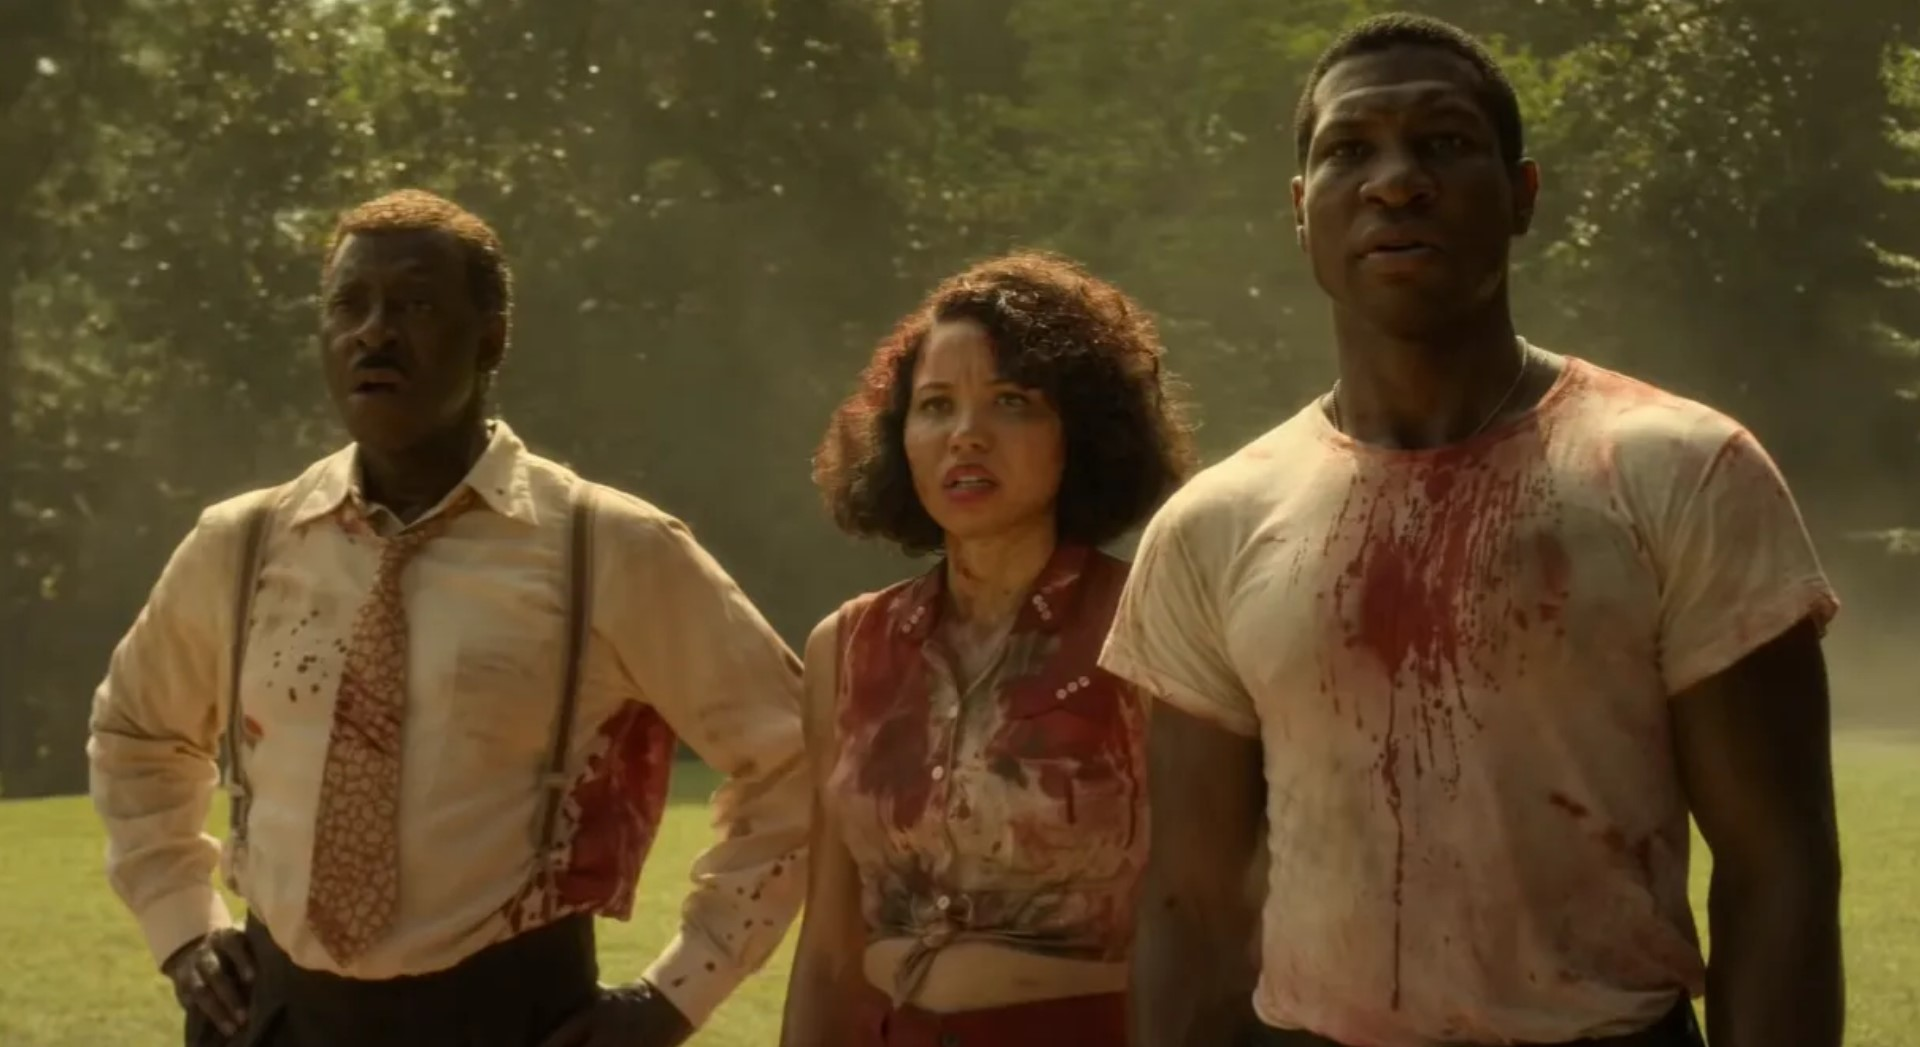 Jordan Peele's 'Lovecraft Country' Hits HBO in August